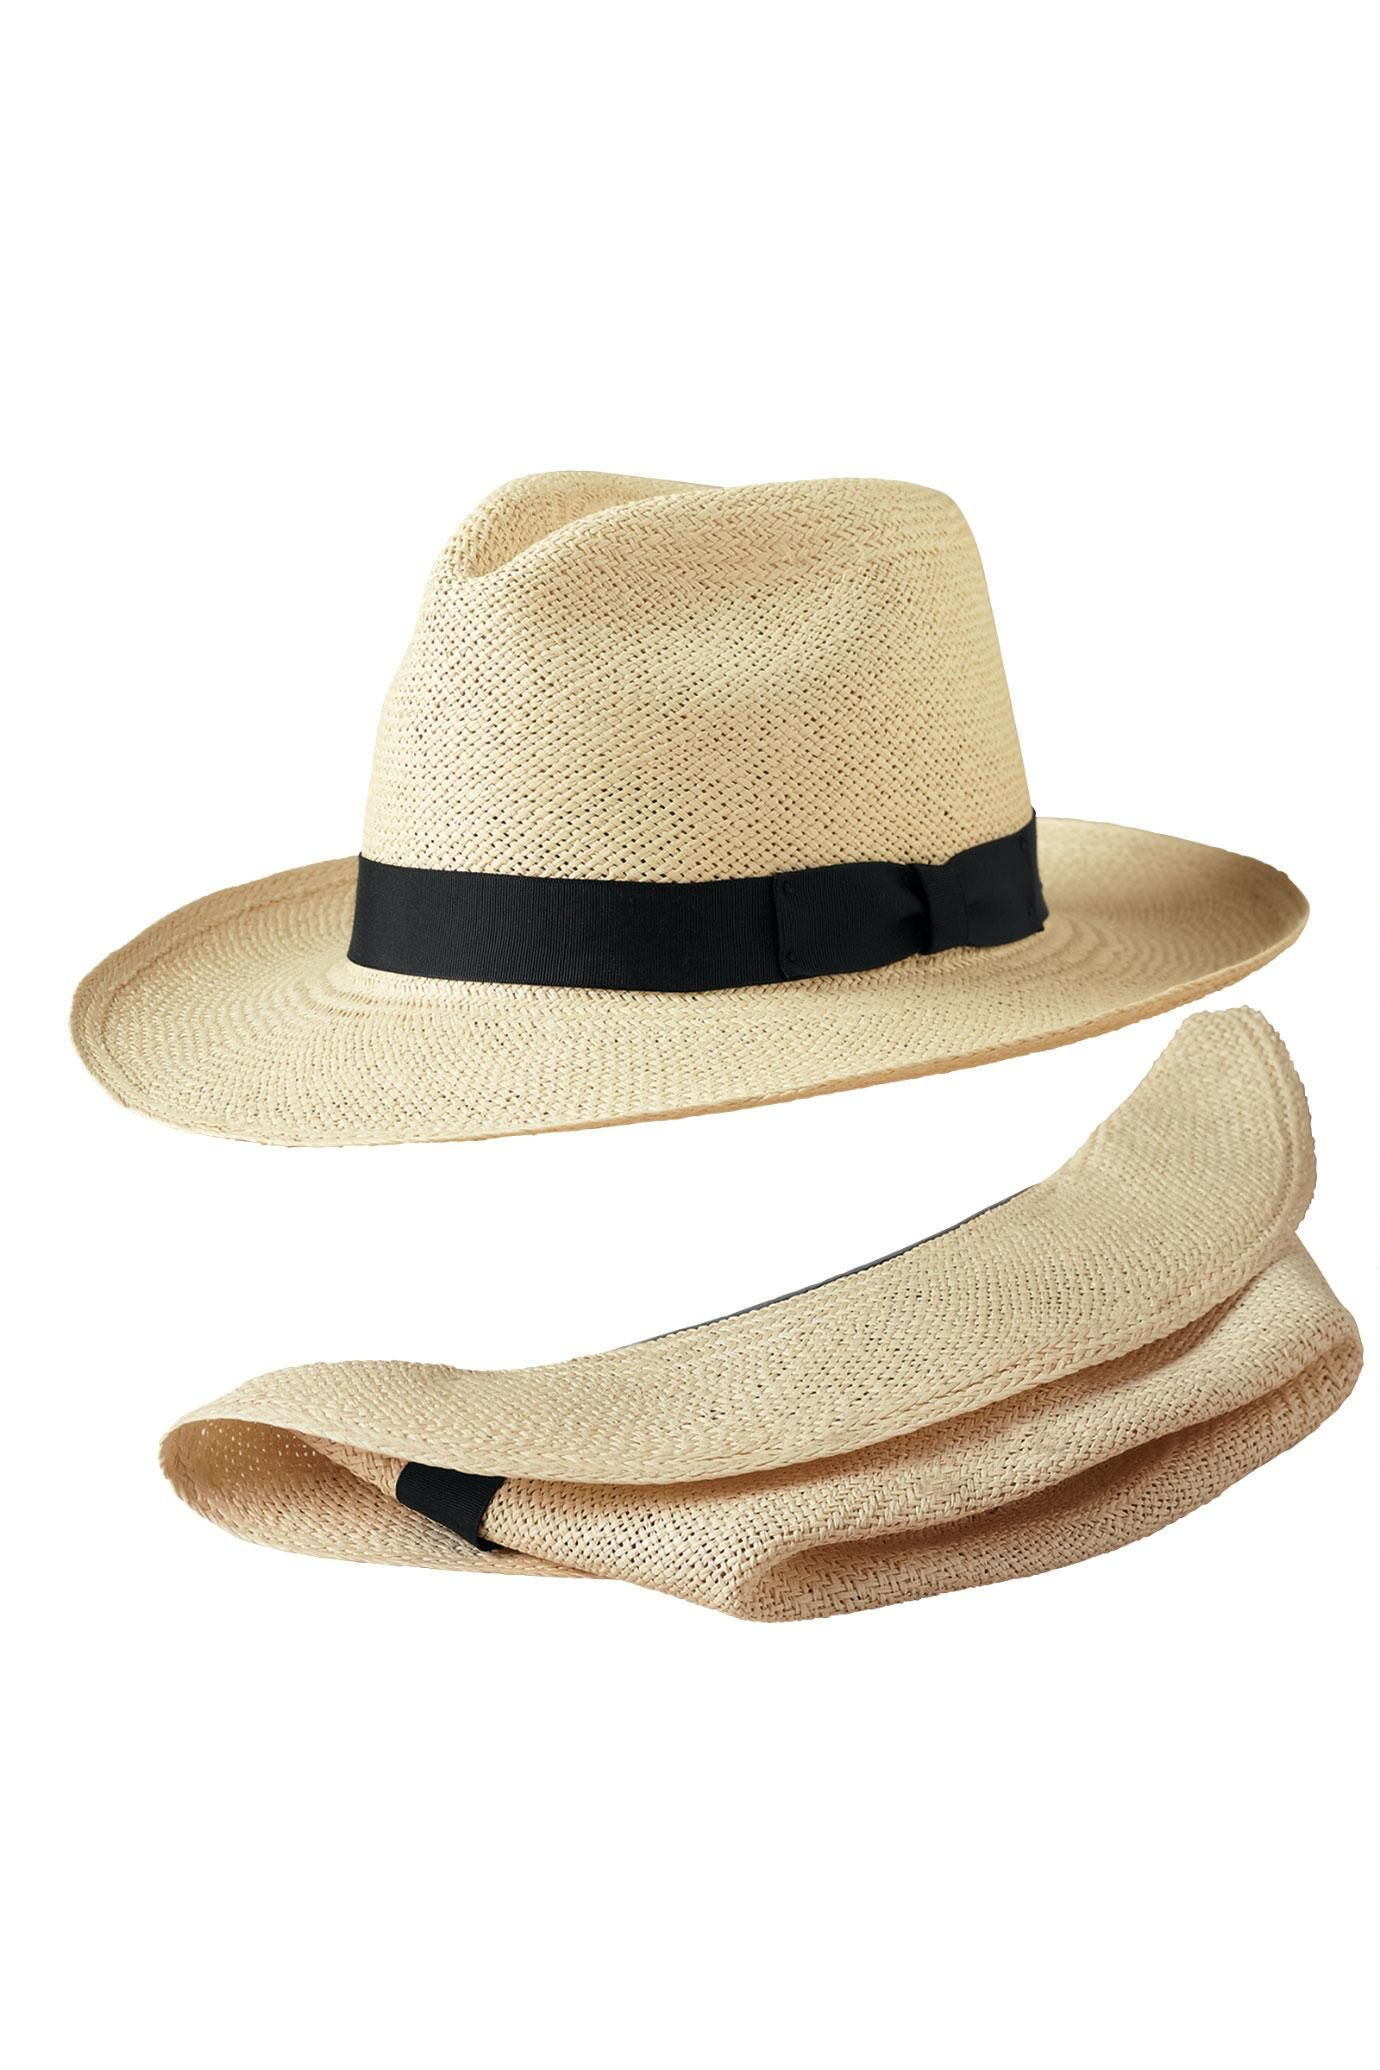 b123a63209a Packable Panama Hat   Travelsmith  84.00